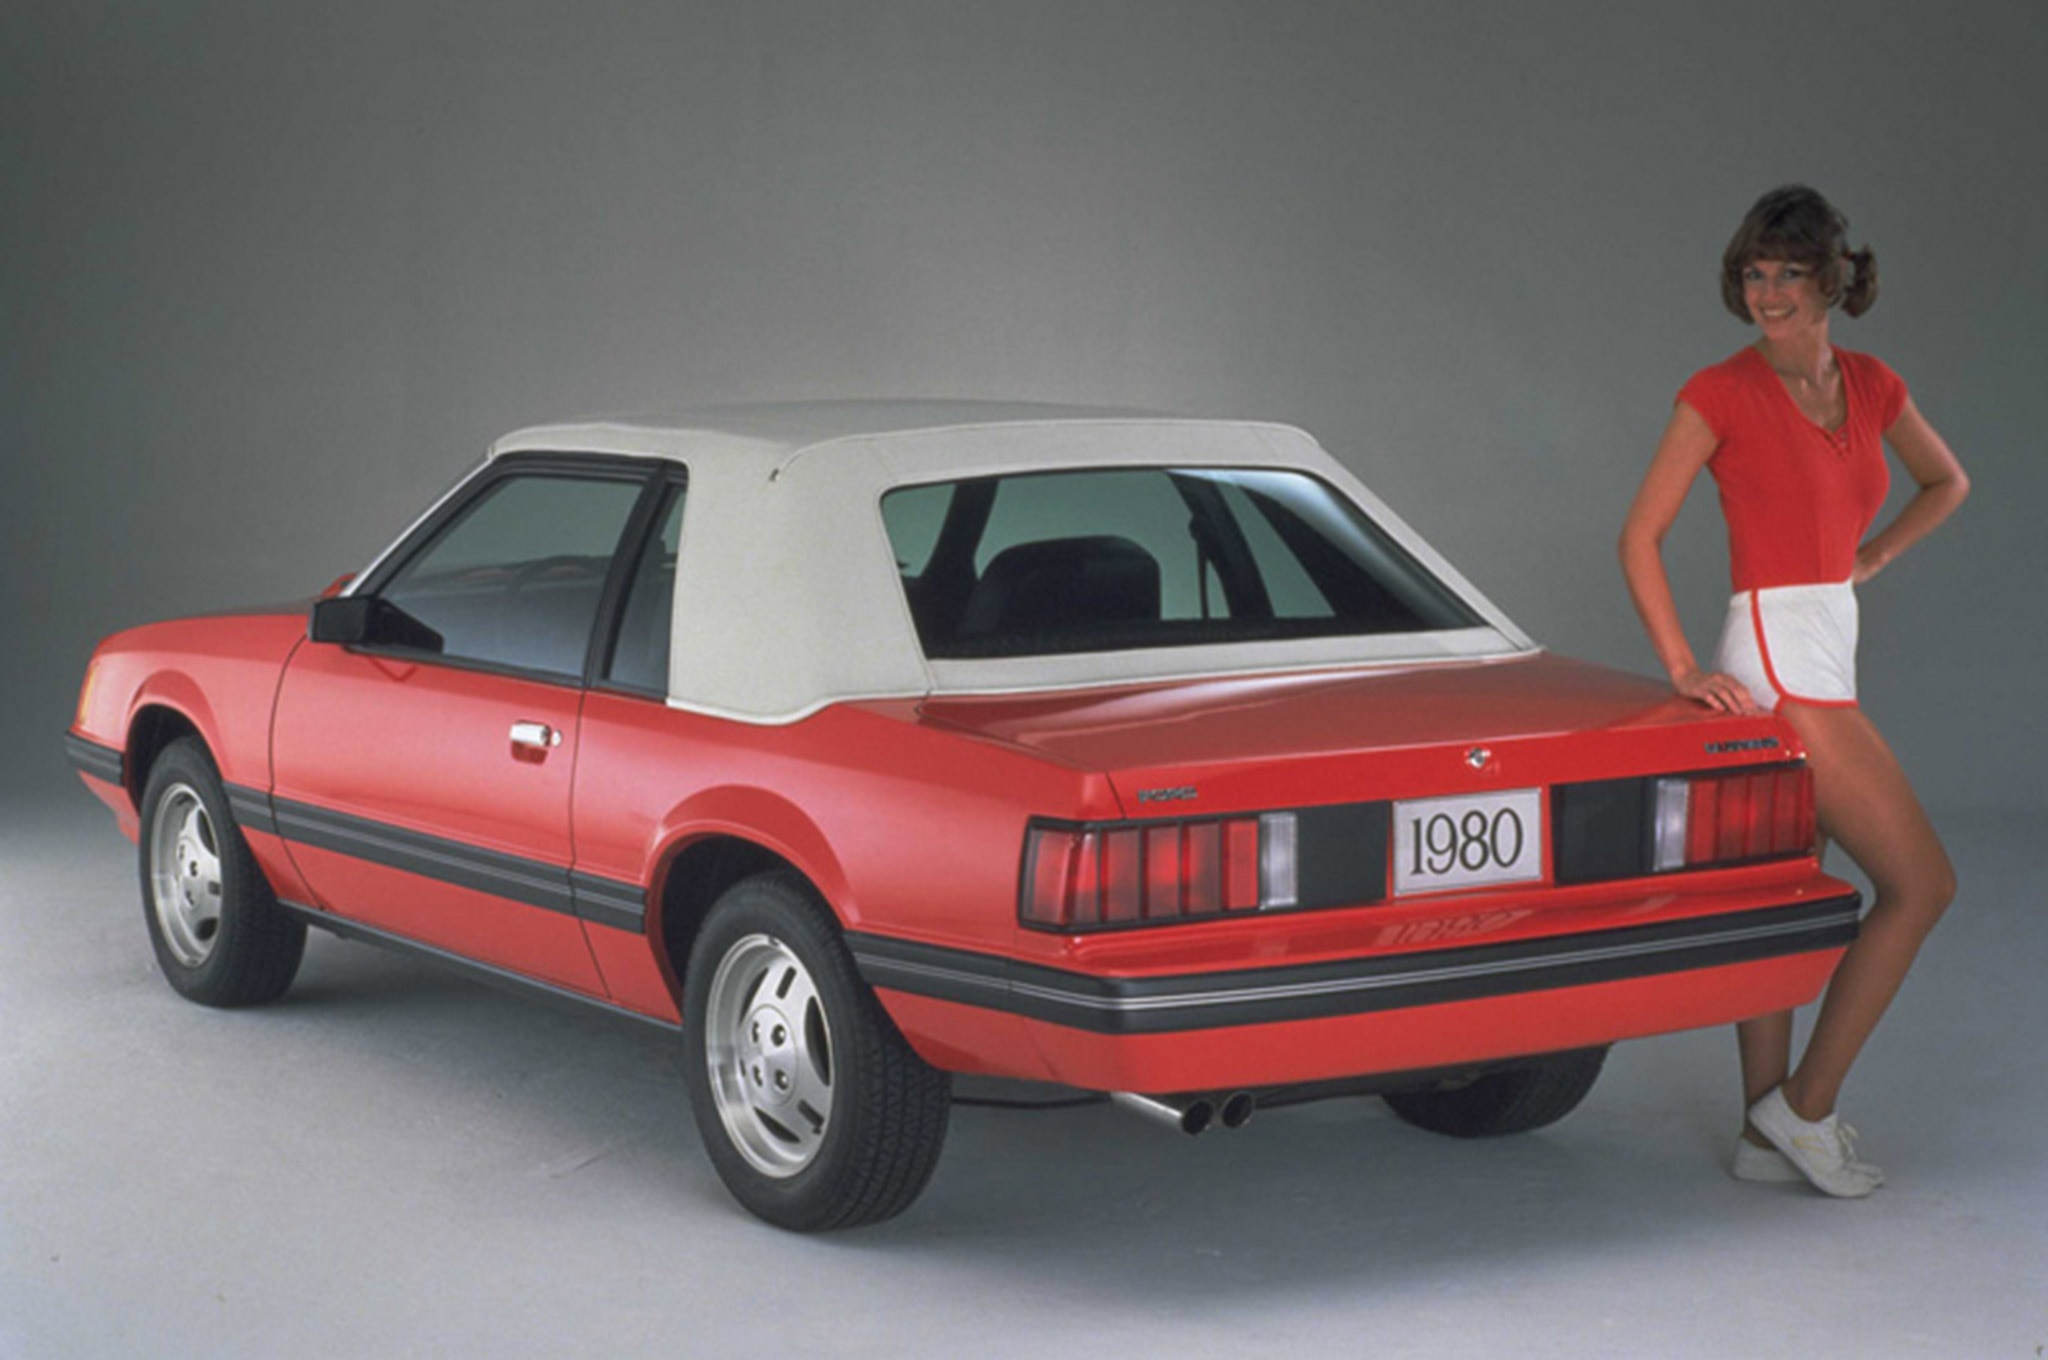 000 1980 Ford Mustang Smog Exempt